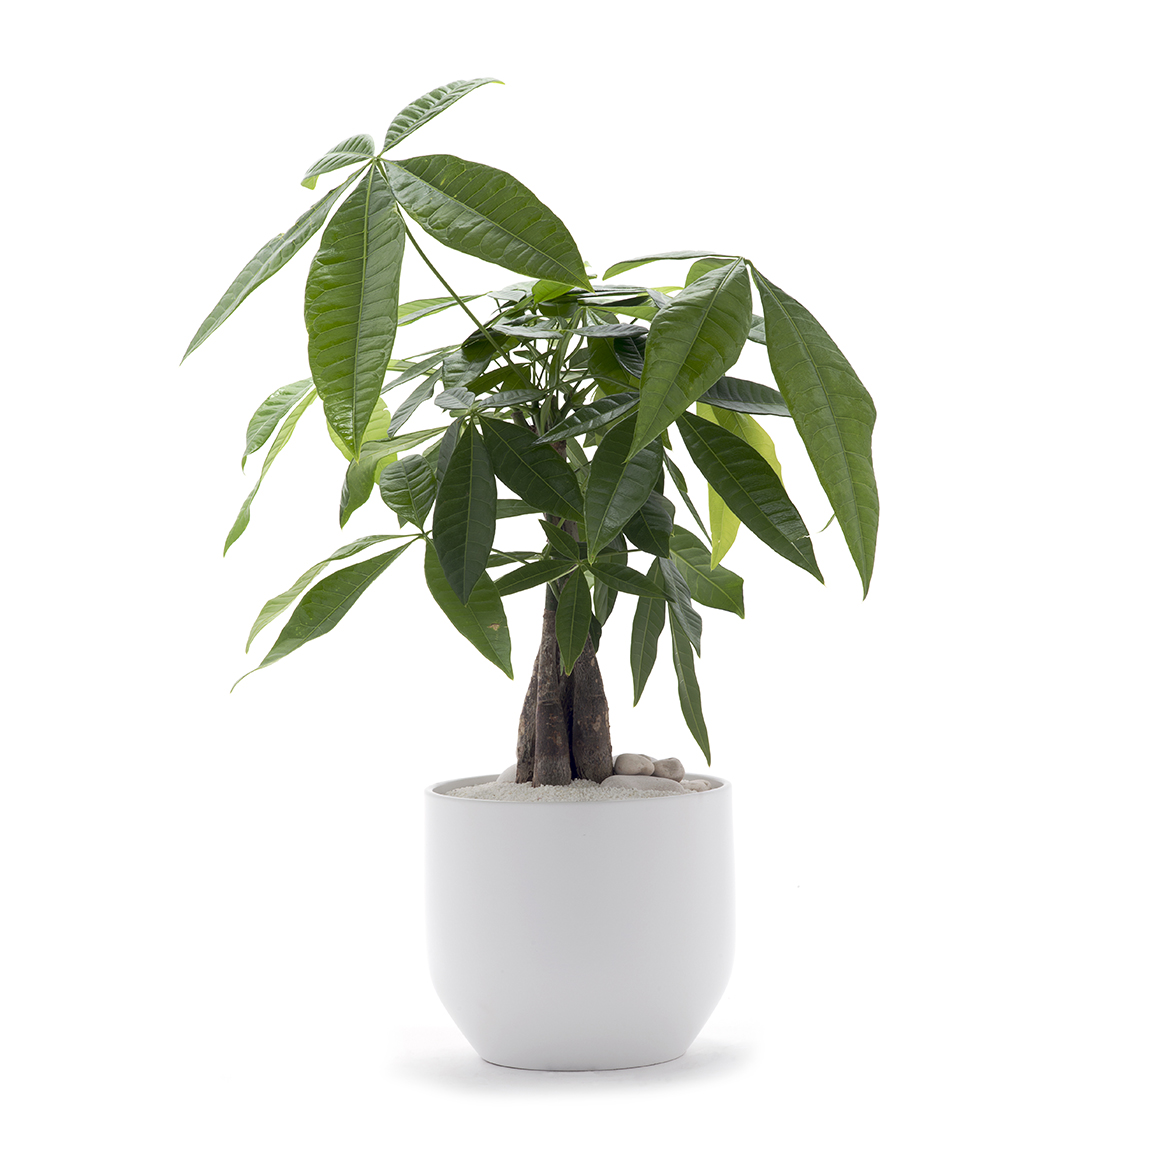 Small money tree in white round planter